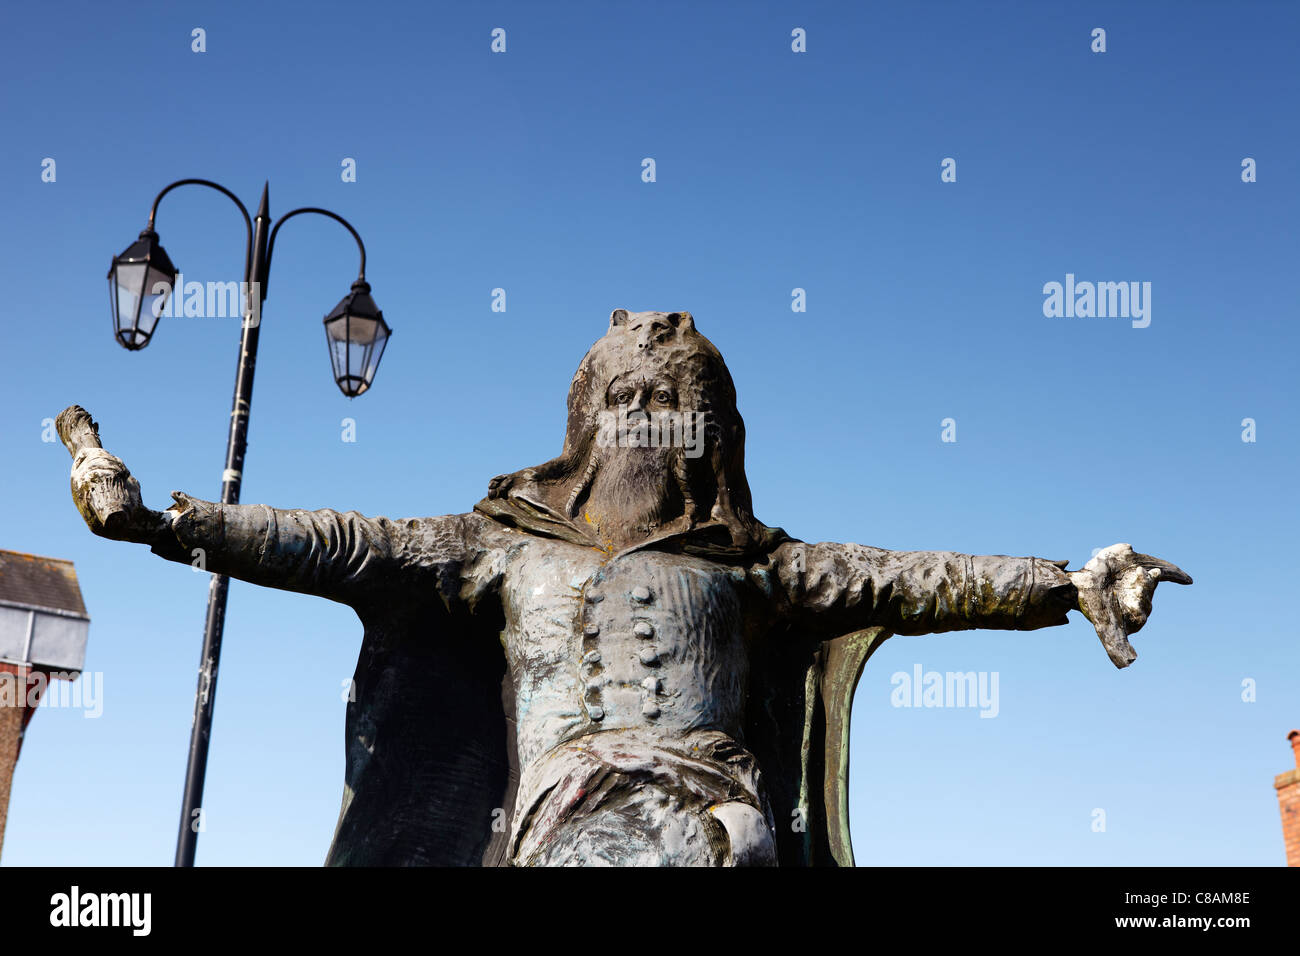 Statue of Dr William Price, 19th Century surgeon and Druid, Llantrisant. Wales, UK - Stock Image